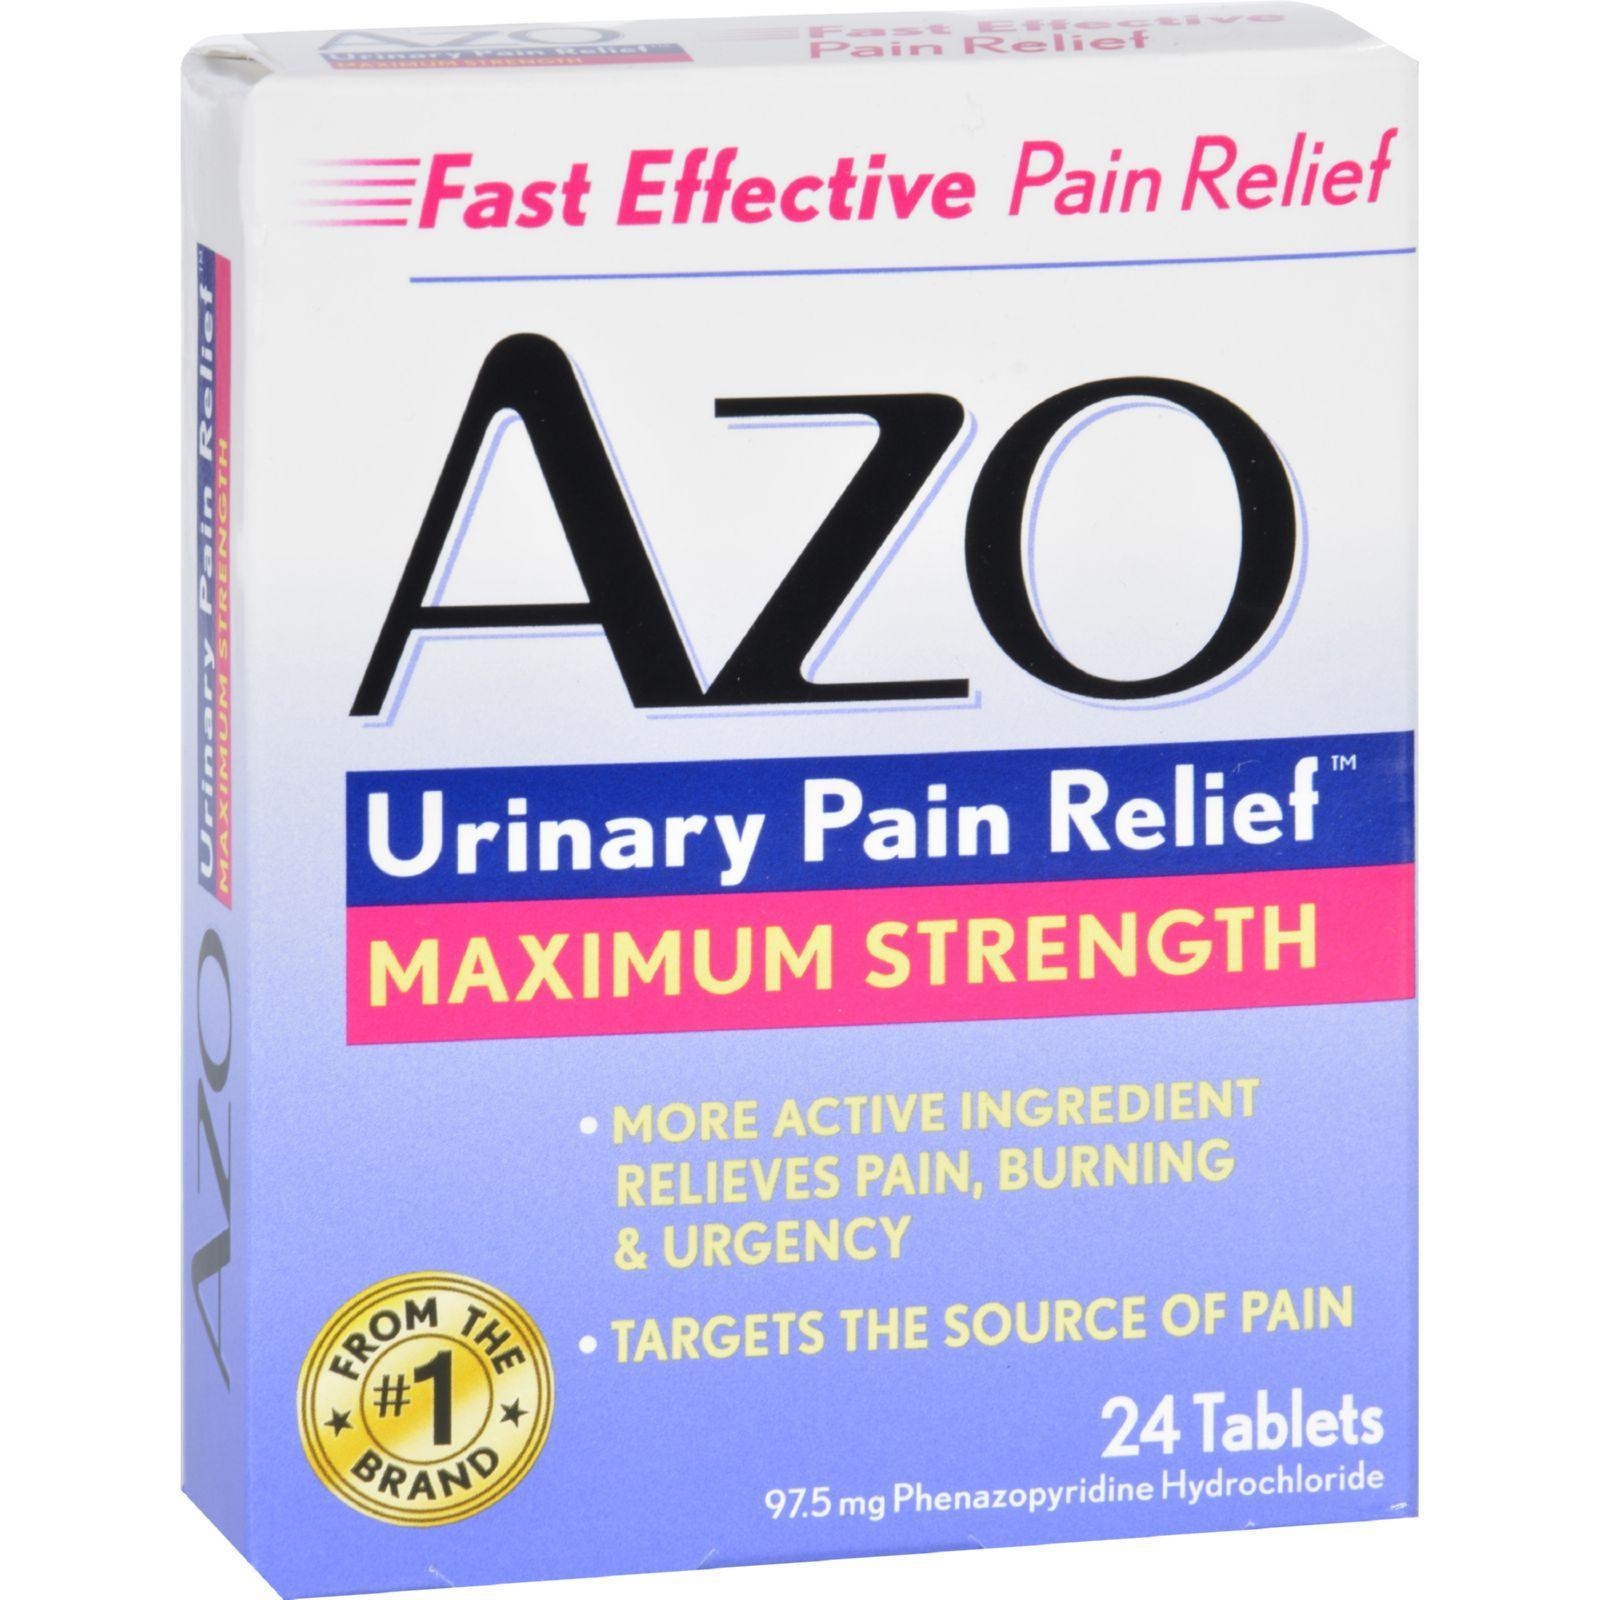 Azo Urinary Pain Relief 24 Tablets Products Uti